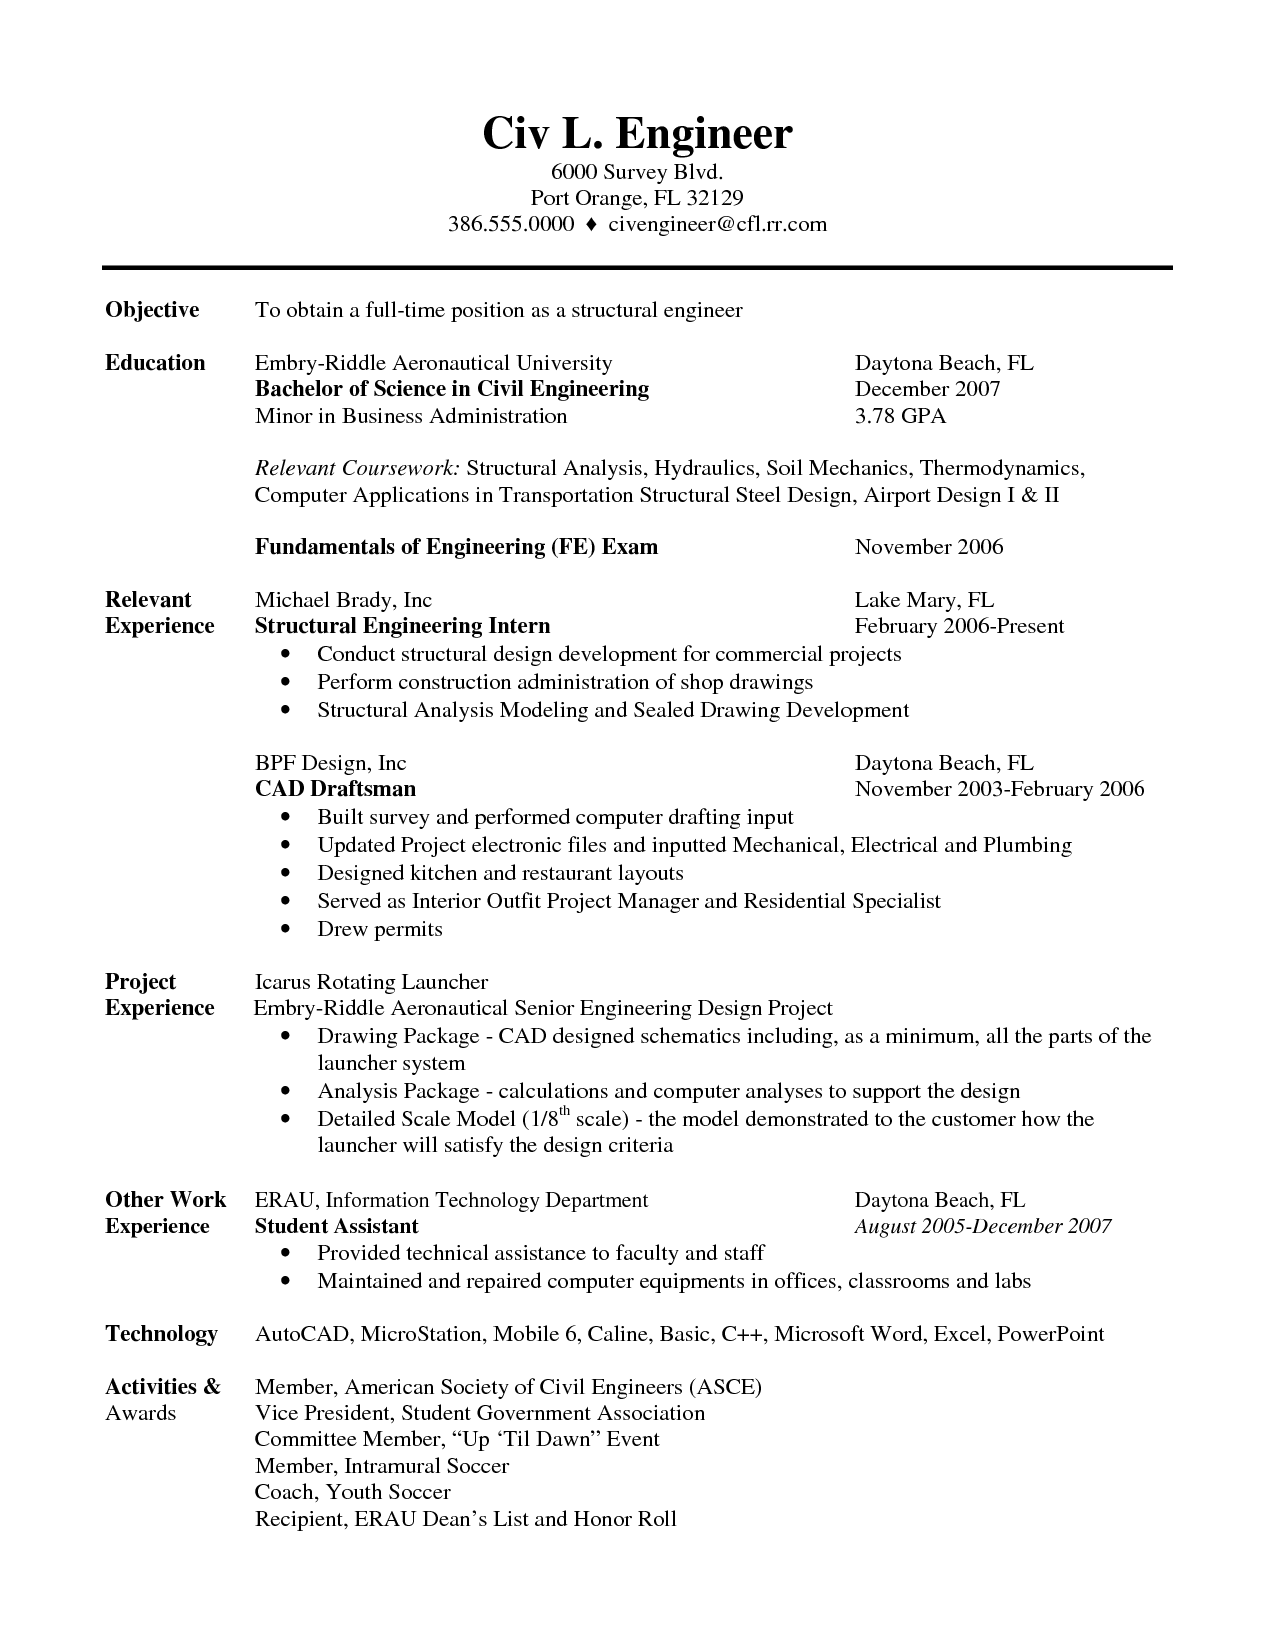 A properly organized resume saves potential employers time when